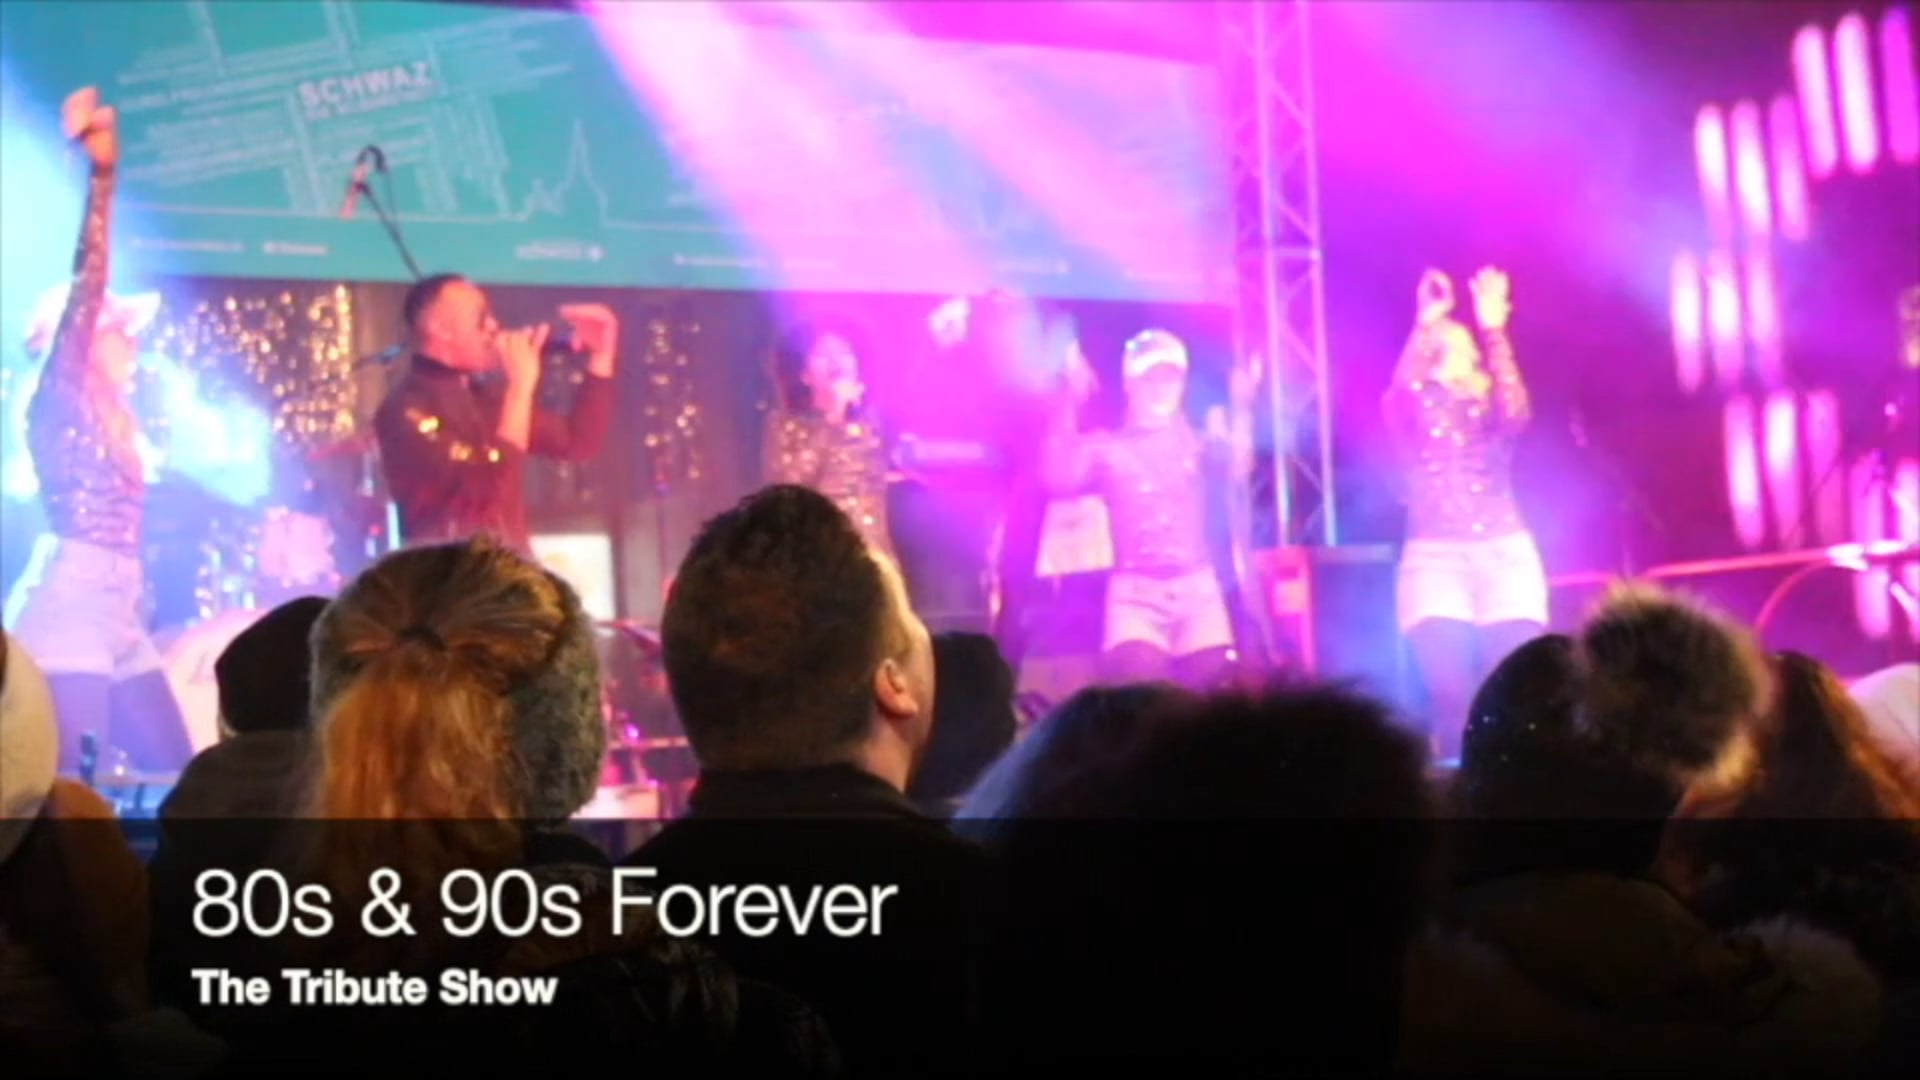 80s & 90s Forever - The Tribute Show